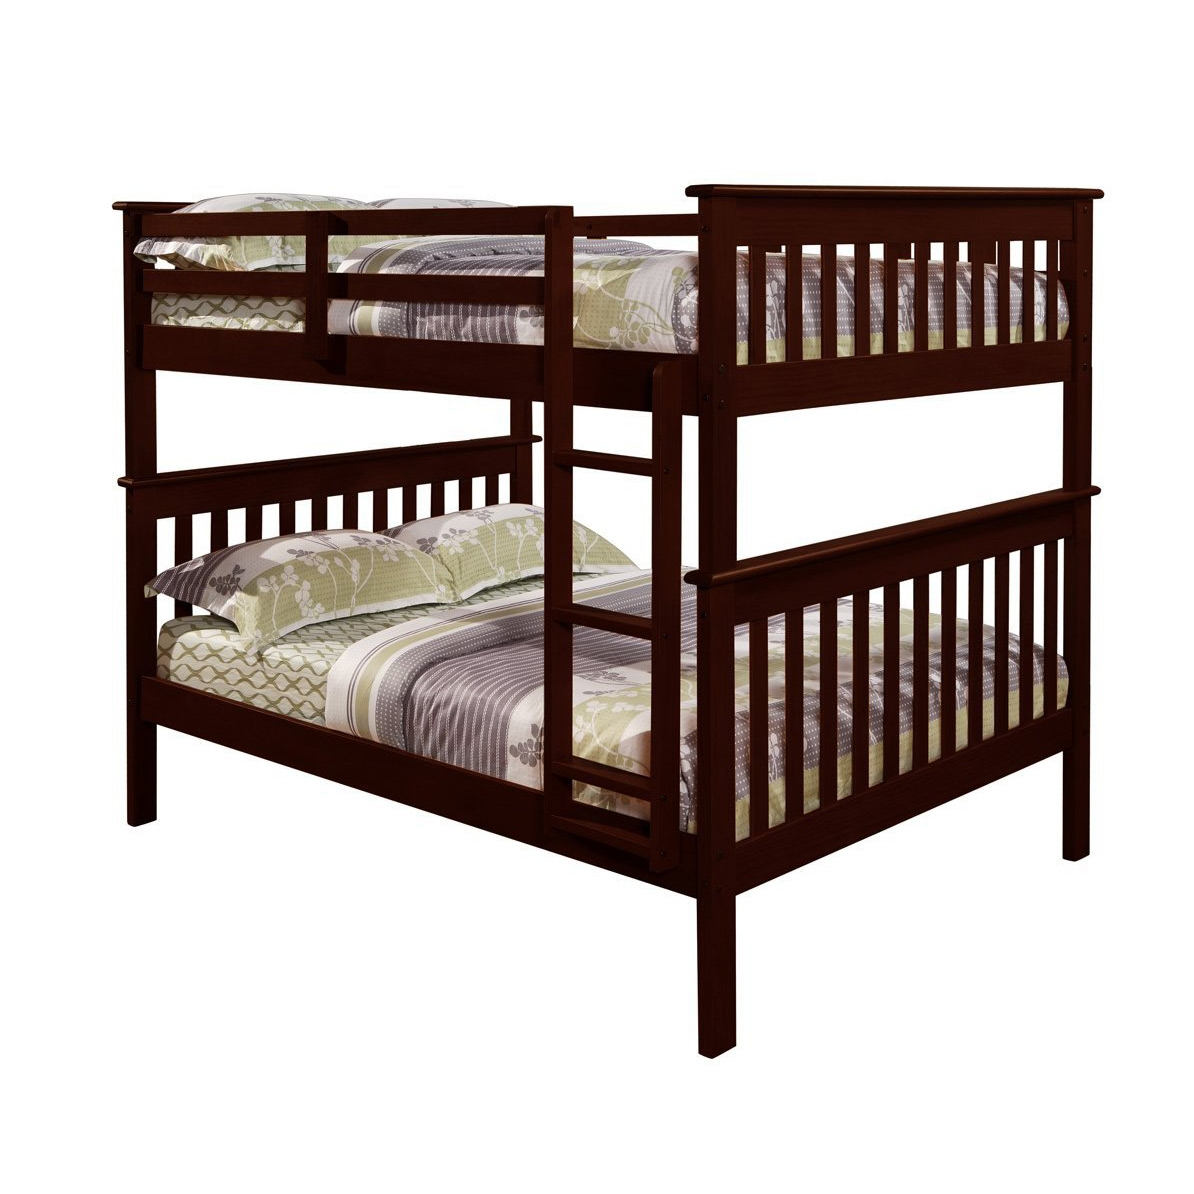 "Solid Wood Full Over Full Bunk Bed in Cappuccino Finish, DBF39661 :  Room to stretch out is the key to this Solid Wood Full Over Full Bunk Bed in Cappuccino Finish's popularity. At MOM'S safety comes first, so all of our bunk beds are strongly constructed and rigorously tested in independent labs to meet or exceed ASTM and CPSC safety standards. Guardrails are included for the top bunk. Ladder rungs are flat, not vertical, for your child's comfort and easy access to the top bunk. All wood is fully sanded and sealed with a clean smooth coating to prevent splinters. All of our finishes are child-safe and lead free. Each bunk comes with a slat roll foundation to provide secure support for a standard full size mattress (54"" x 74""). The bottom bunk is 11"" off the floor and the space between the bottom bunk slats and top bunk slats is 30"". The bed is solid wood making it a practical and durable choice for kids rooms. This design can be separated into 2 separate full size beds for versatility."